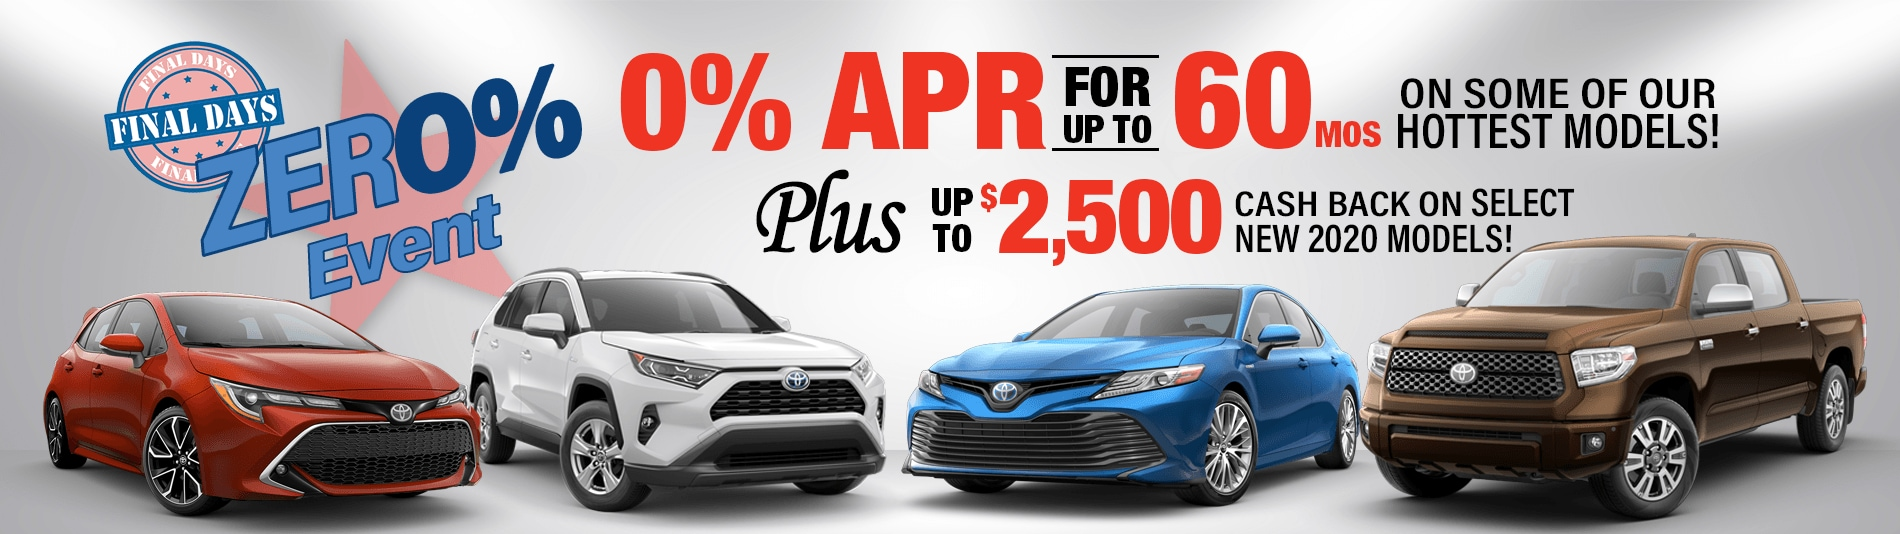 Shop New Toyotas in Peoria, AZ with 0% Financing up to 60 months and up to $2,500 Cash Back!